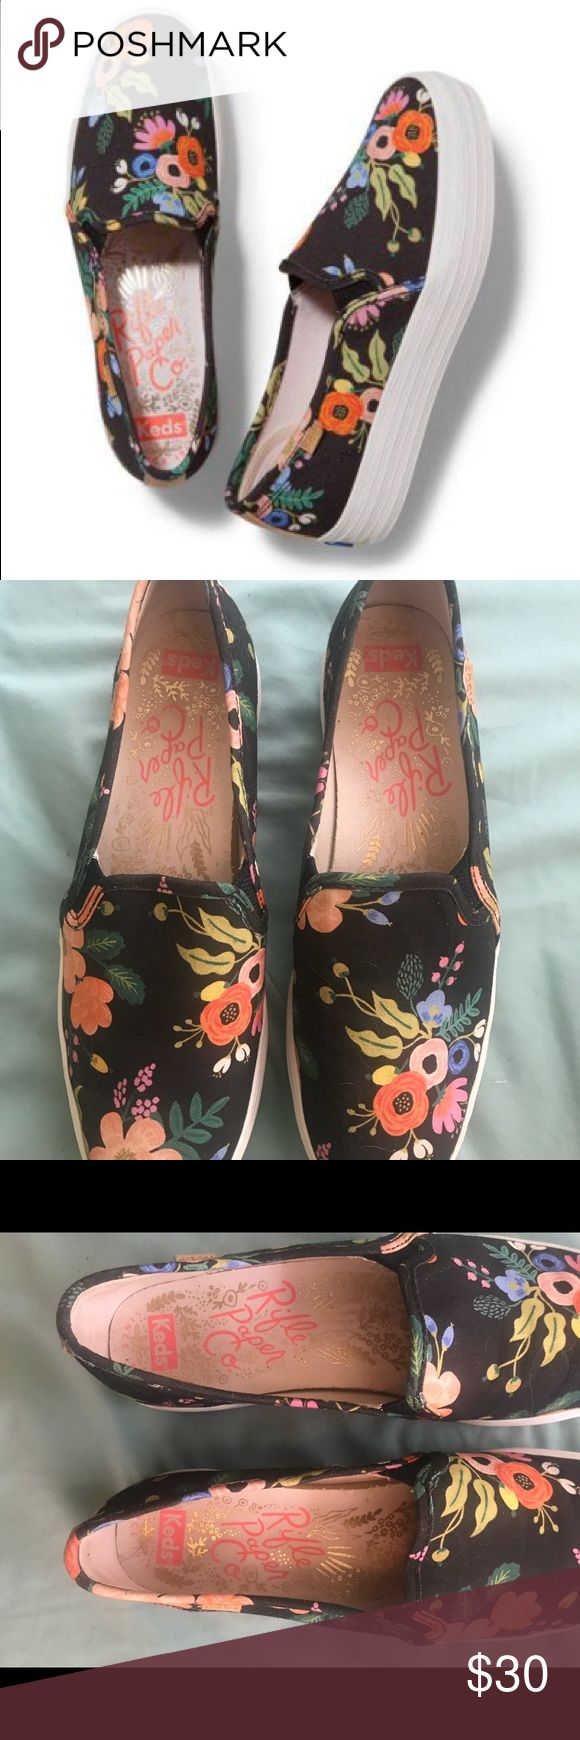 Rifle Paper Co x Keds Slip Ons Floral Rifle Paper Co x Keds collaboration slip on shoes in the style Women's Triple Decker Floral.  I've only worn these shoes once so I'm including photos of how the soles and the bottom looks for proof. I can include the box with them if you want as well.  Just a note, these are a size 8 but for me they were not a true 8 and were tight on me (hence me selling them because they're beautiful and I wish they fit.) they run closer to a 7.5 unless you want to…